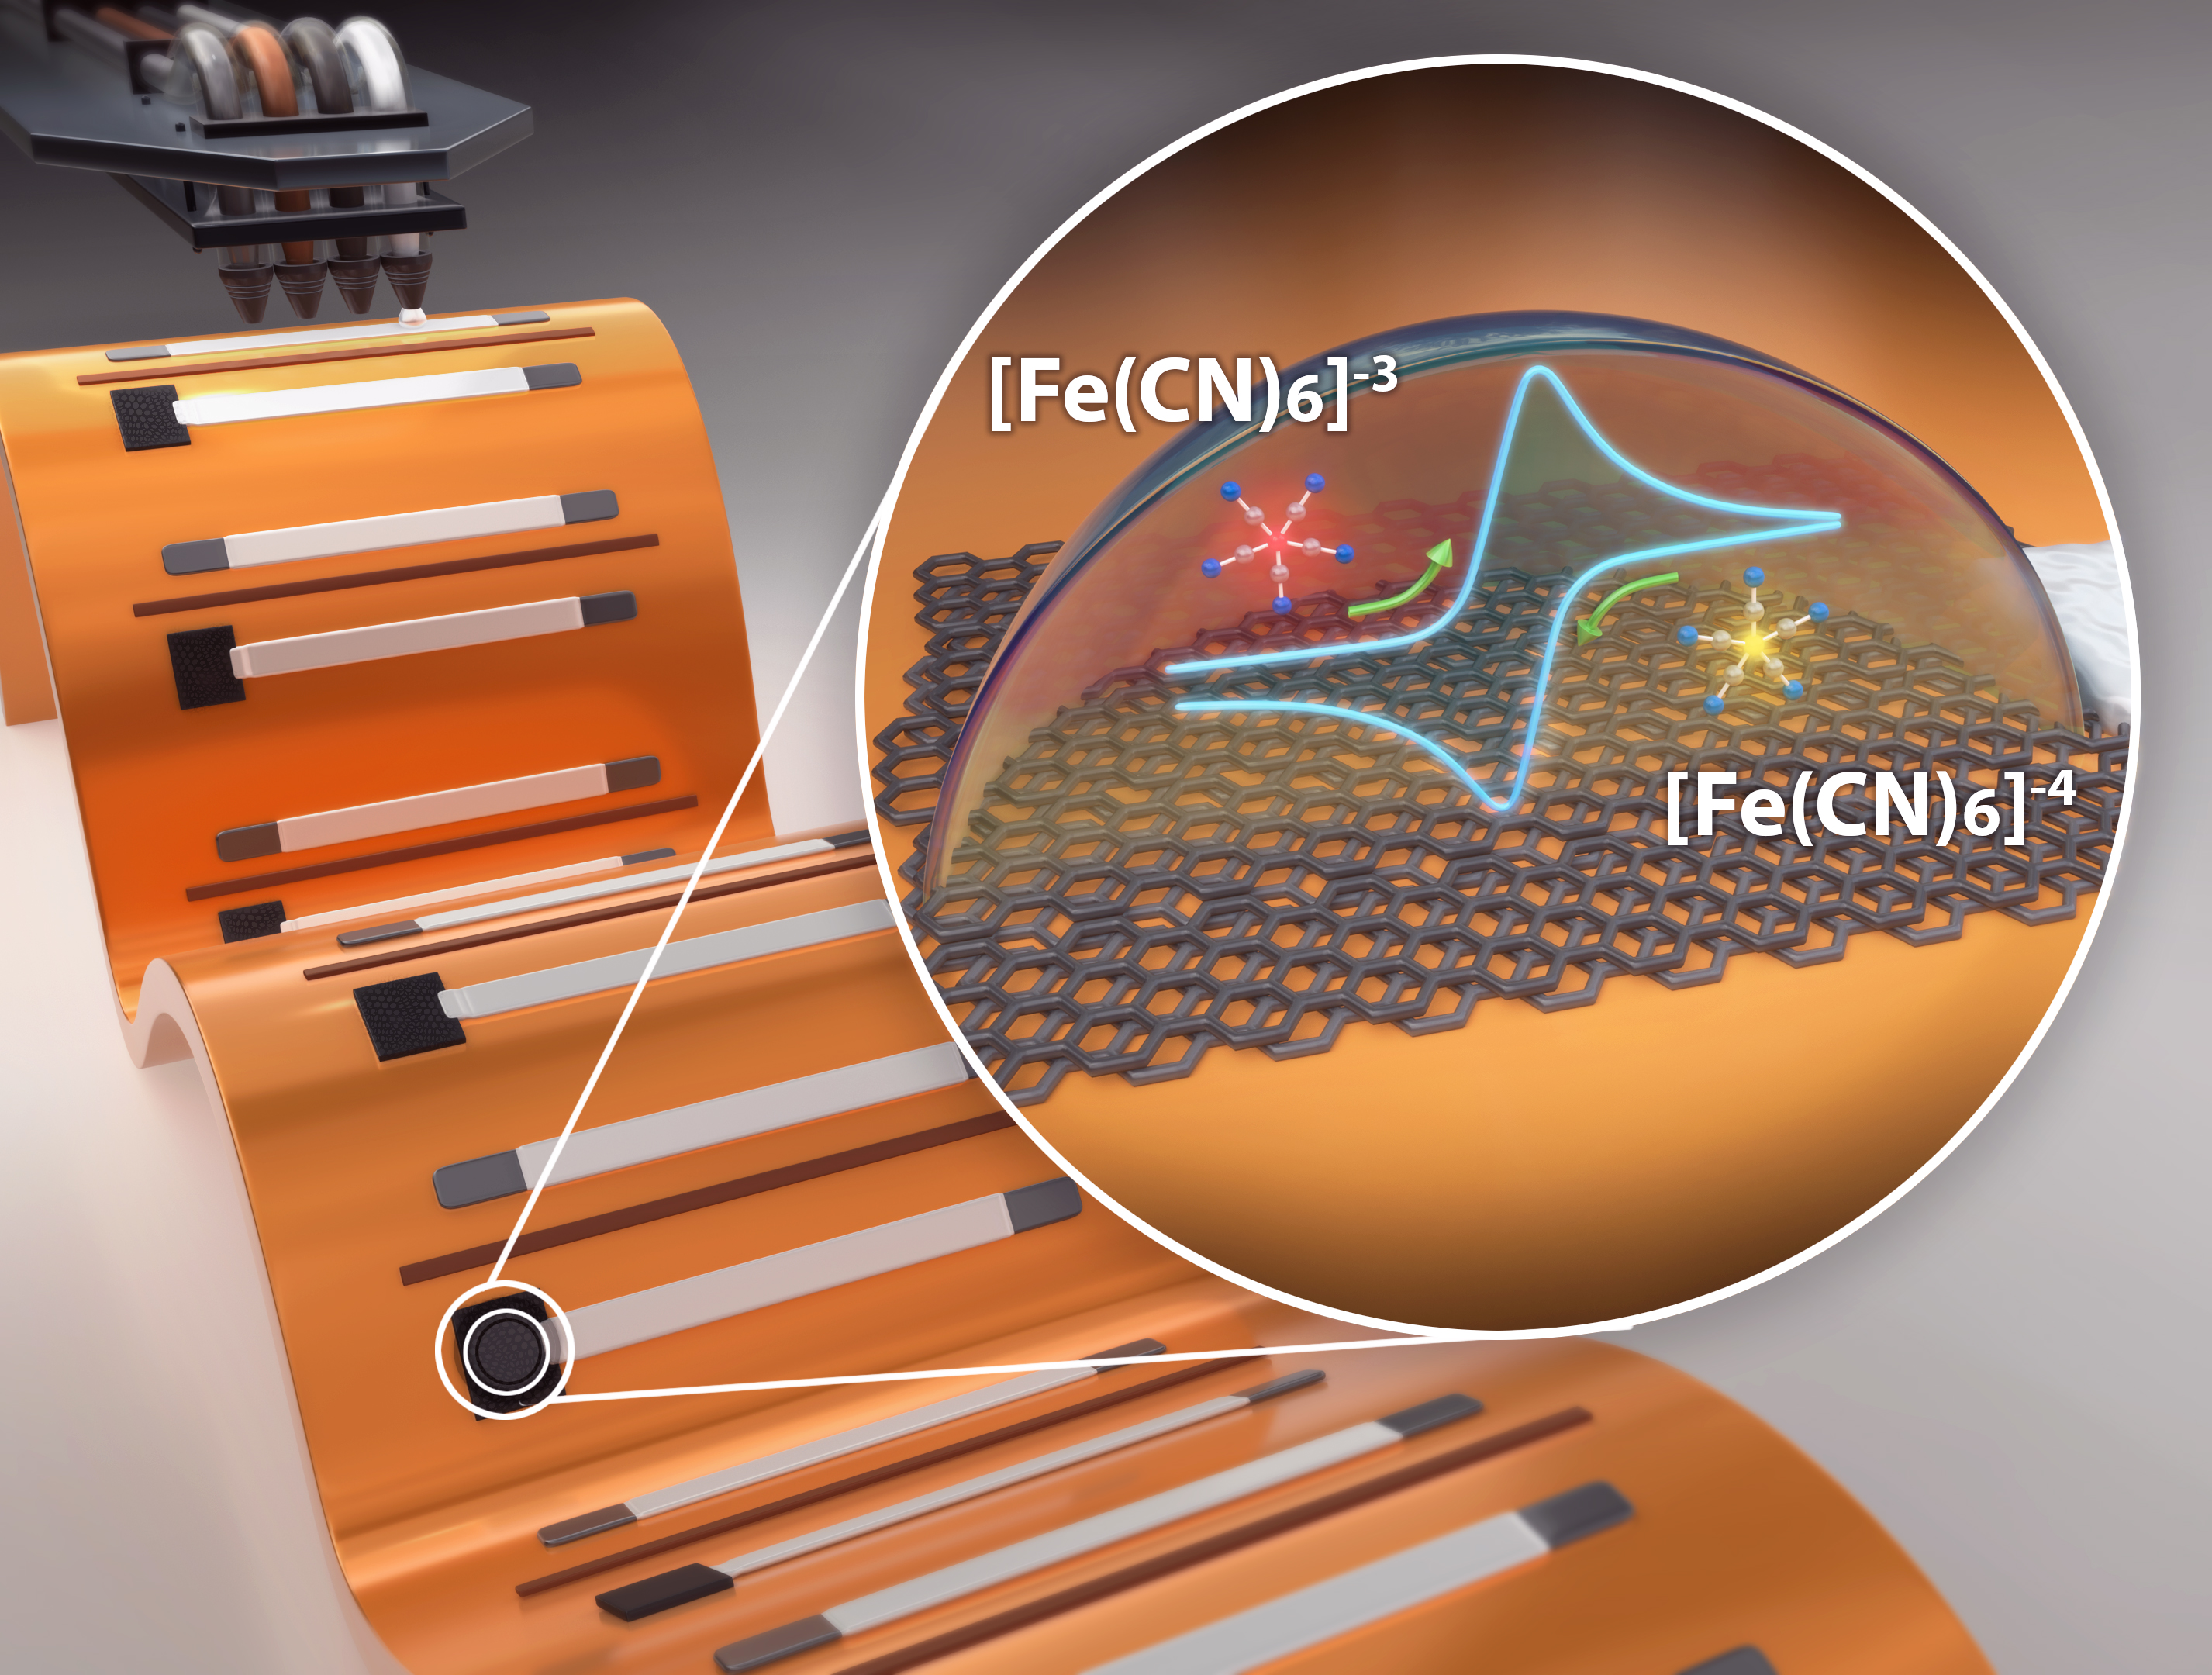 Graphic design visualization of printed graphene electrodes being bent on flexible substrate